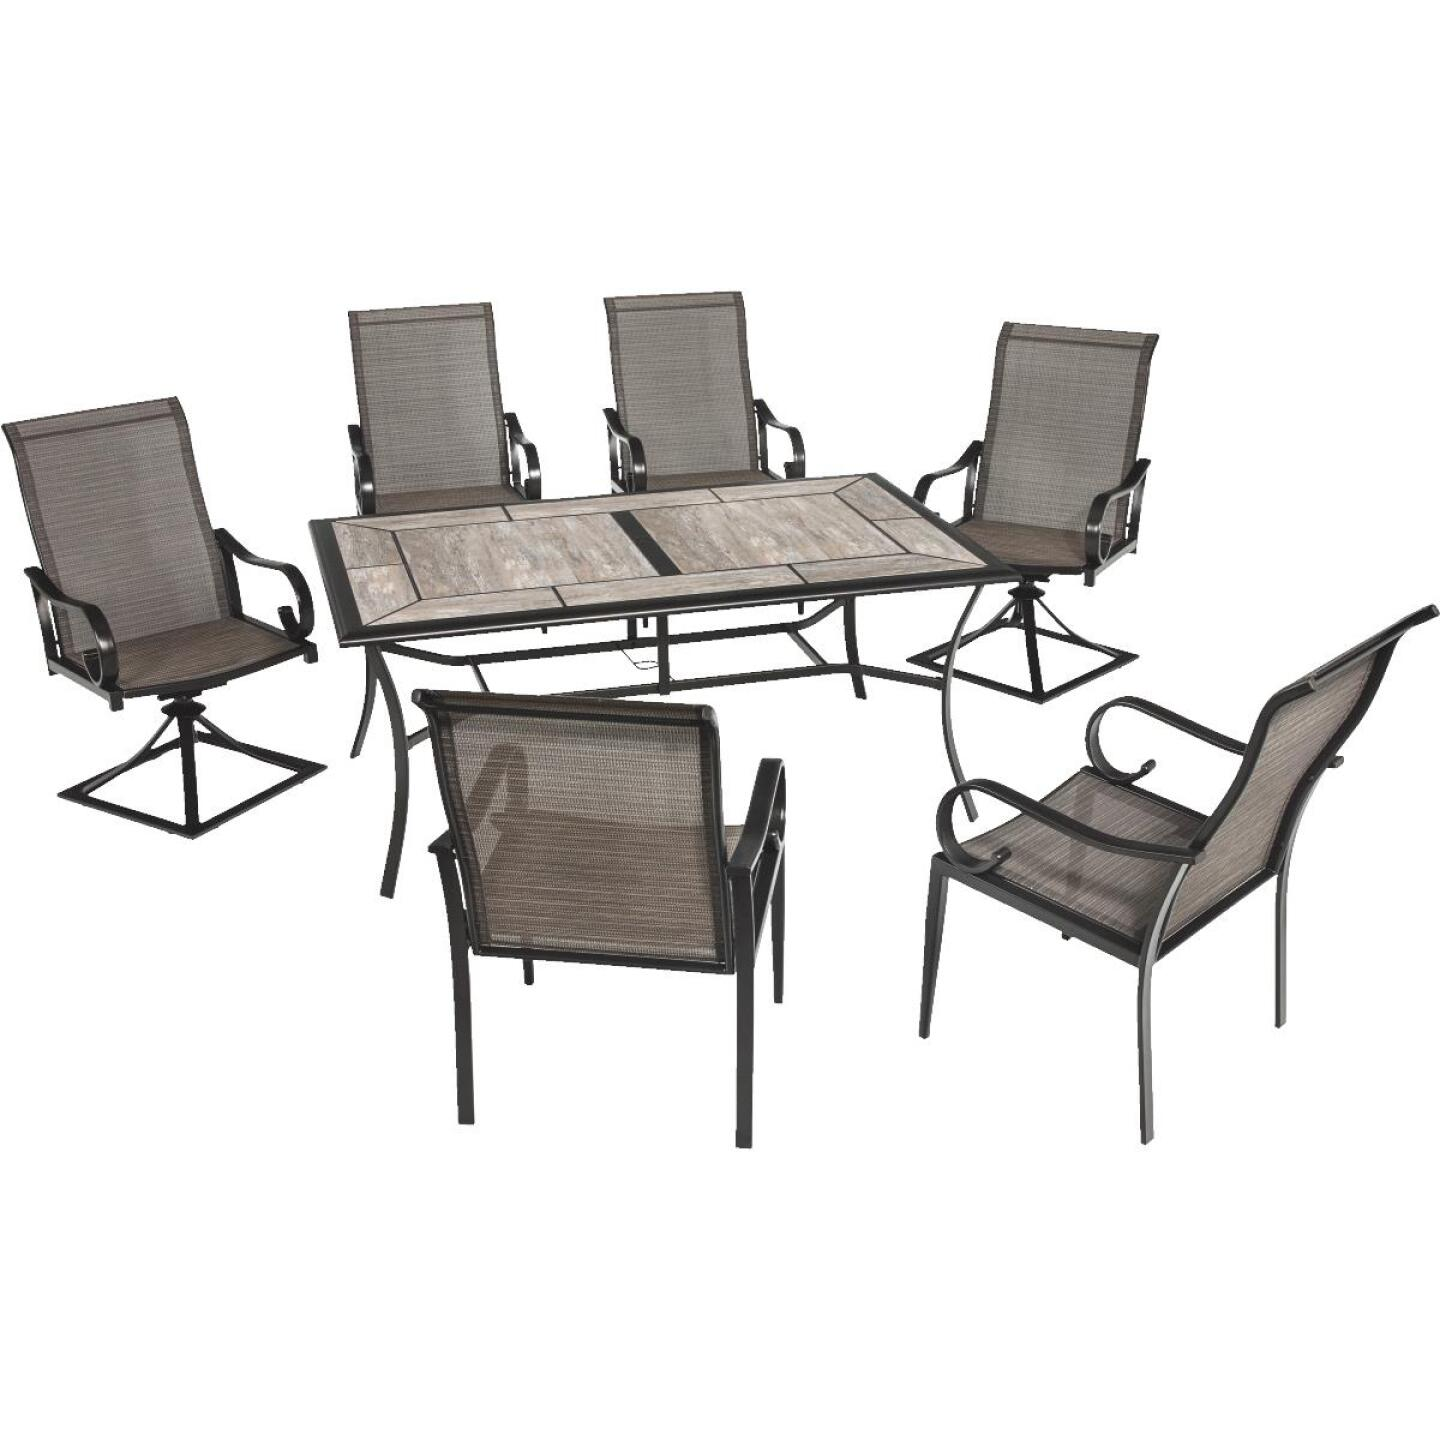 Outdoor Expressions Berkshire 7-Piece Dining Set Image 124